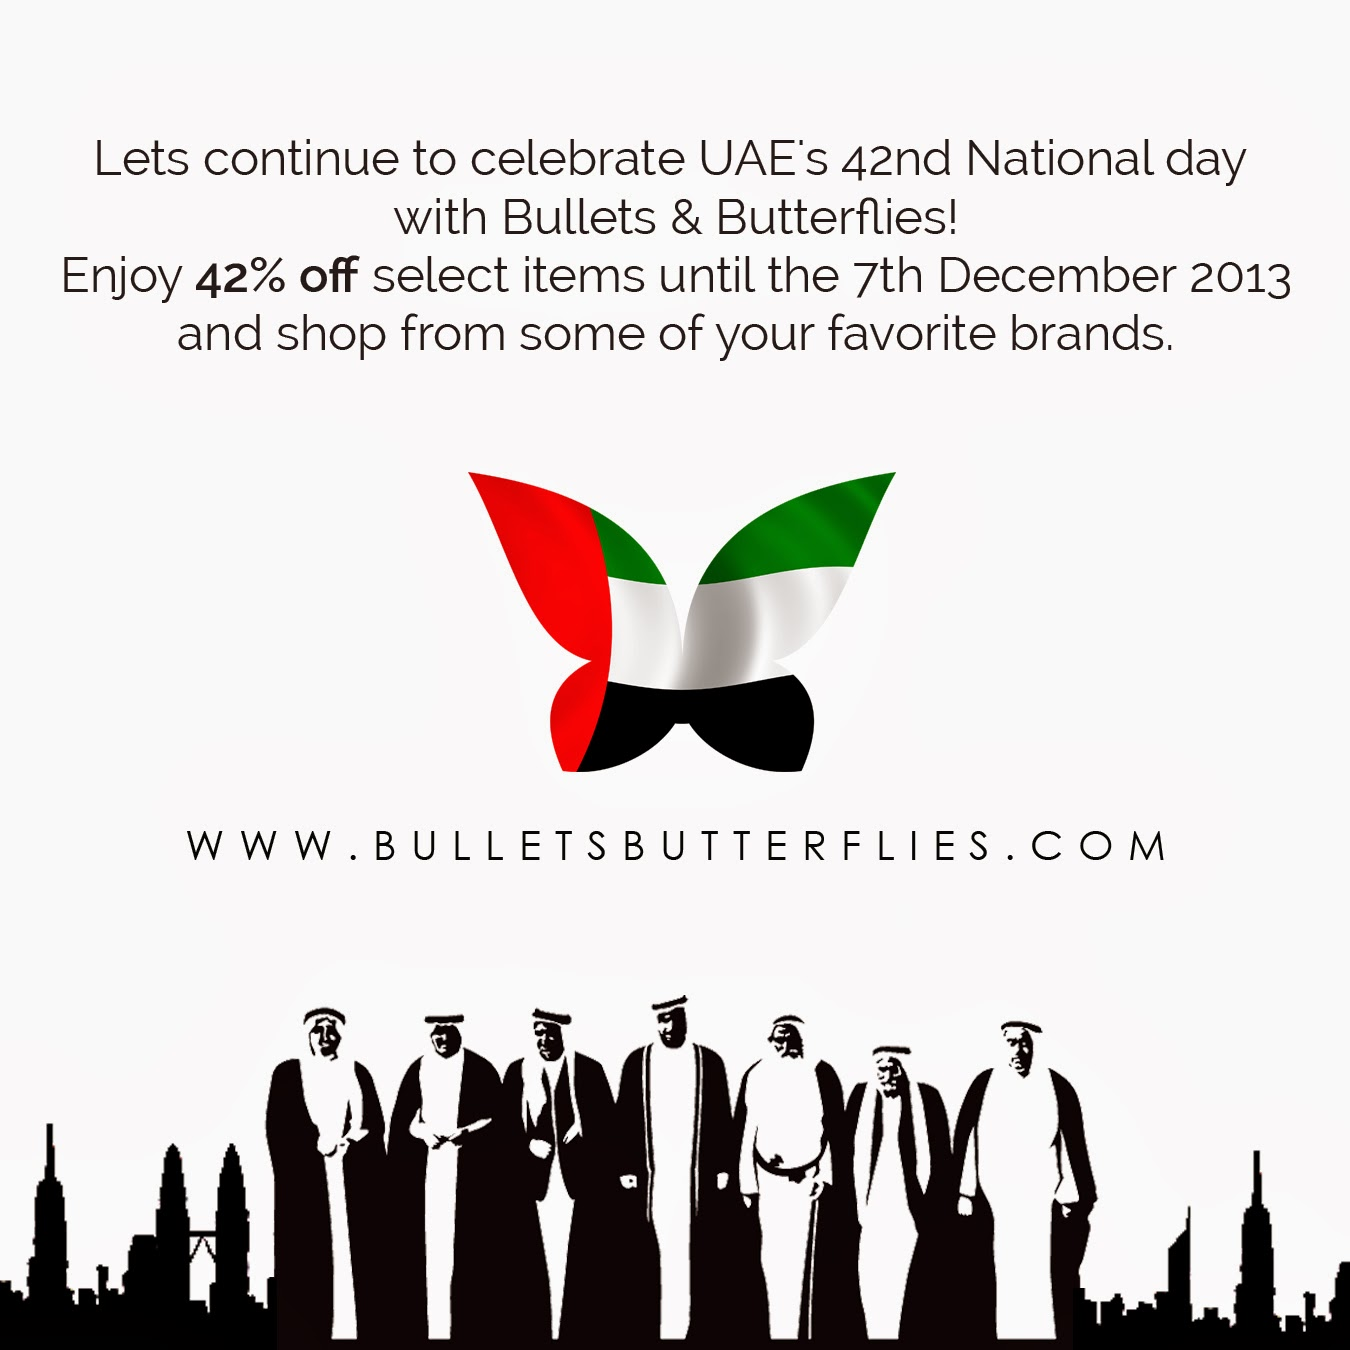 Bullets And Butterflies: HAPPY 42ND NATIONAL DAY UAE